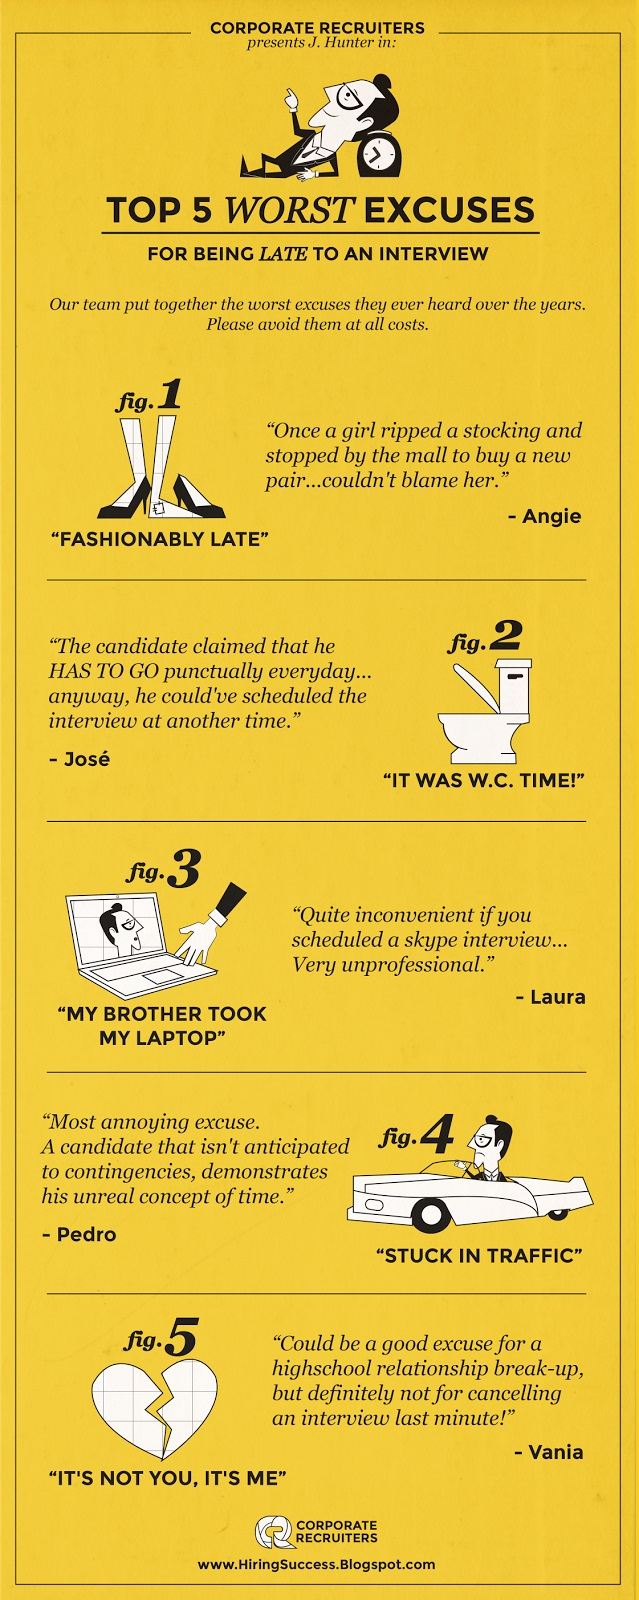 best excuse for being late The most common excuses for being late for work are not always the most   here are some of the best ones collected over the years.